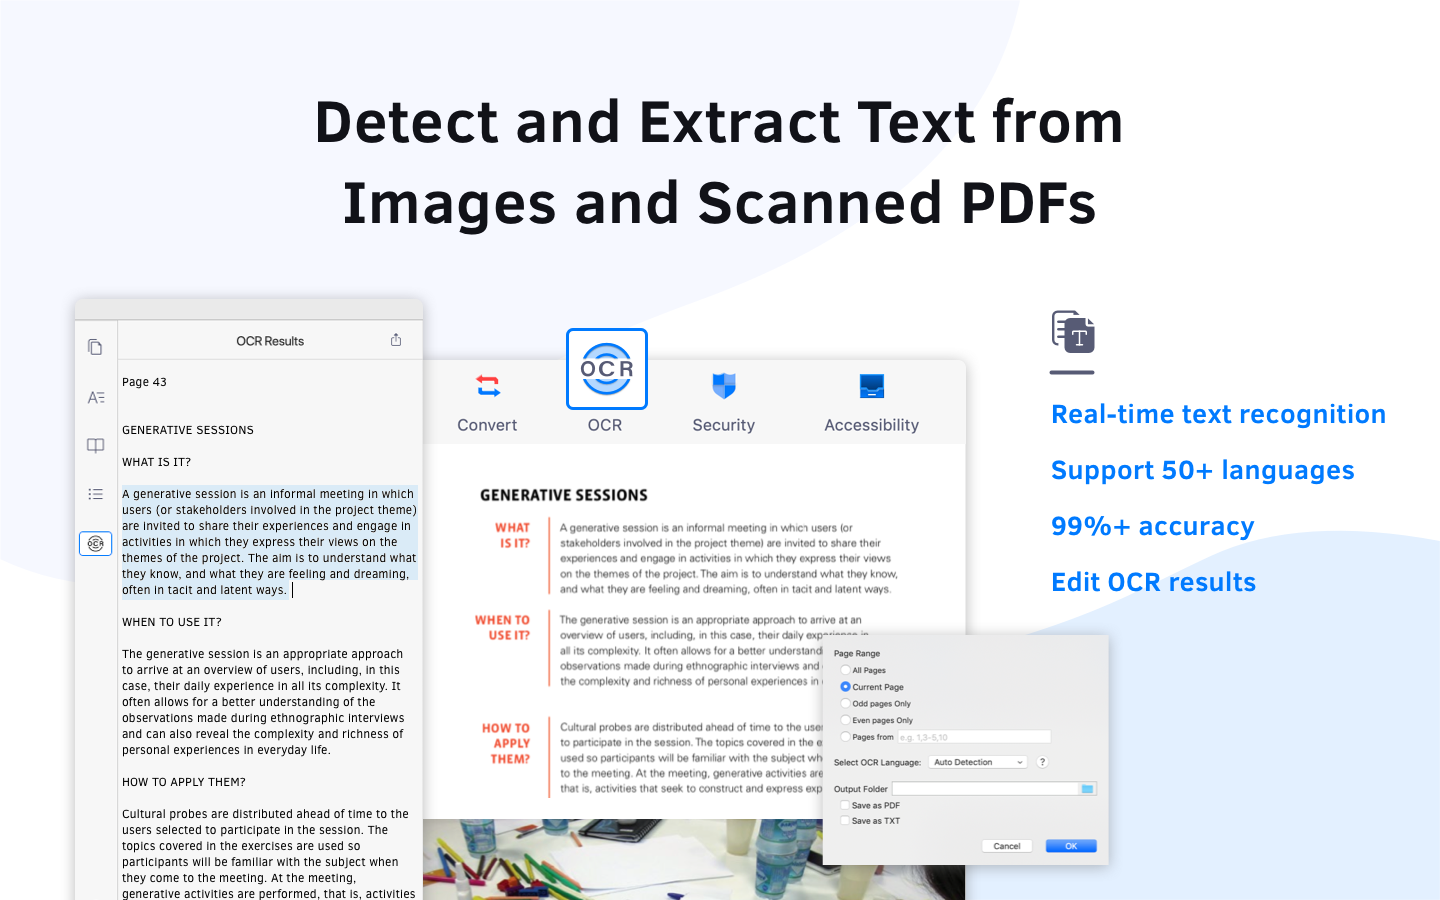 Detect and extract text from image